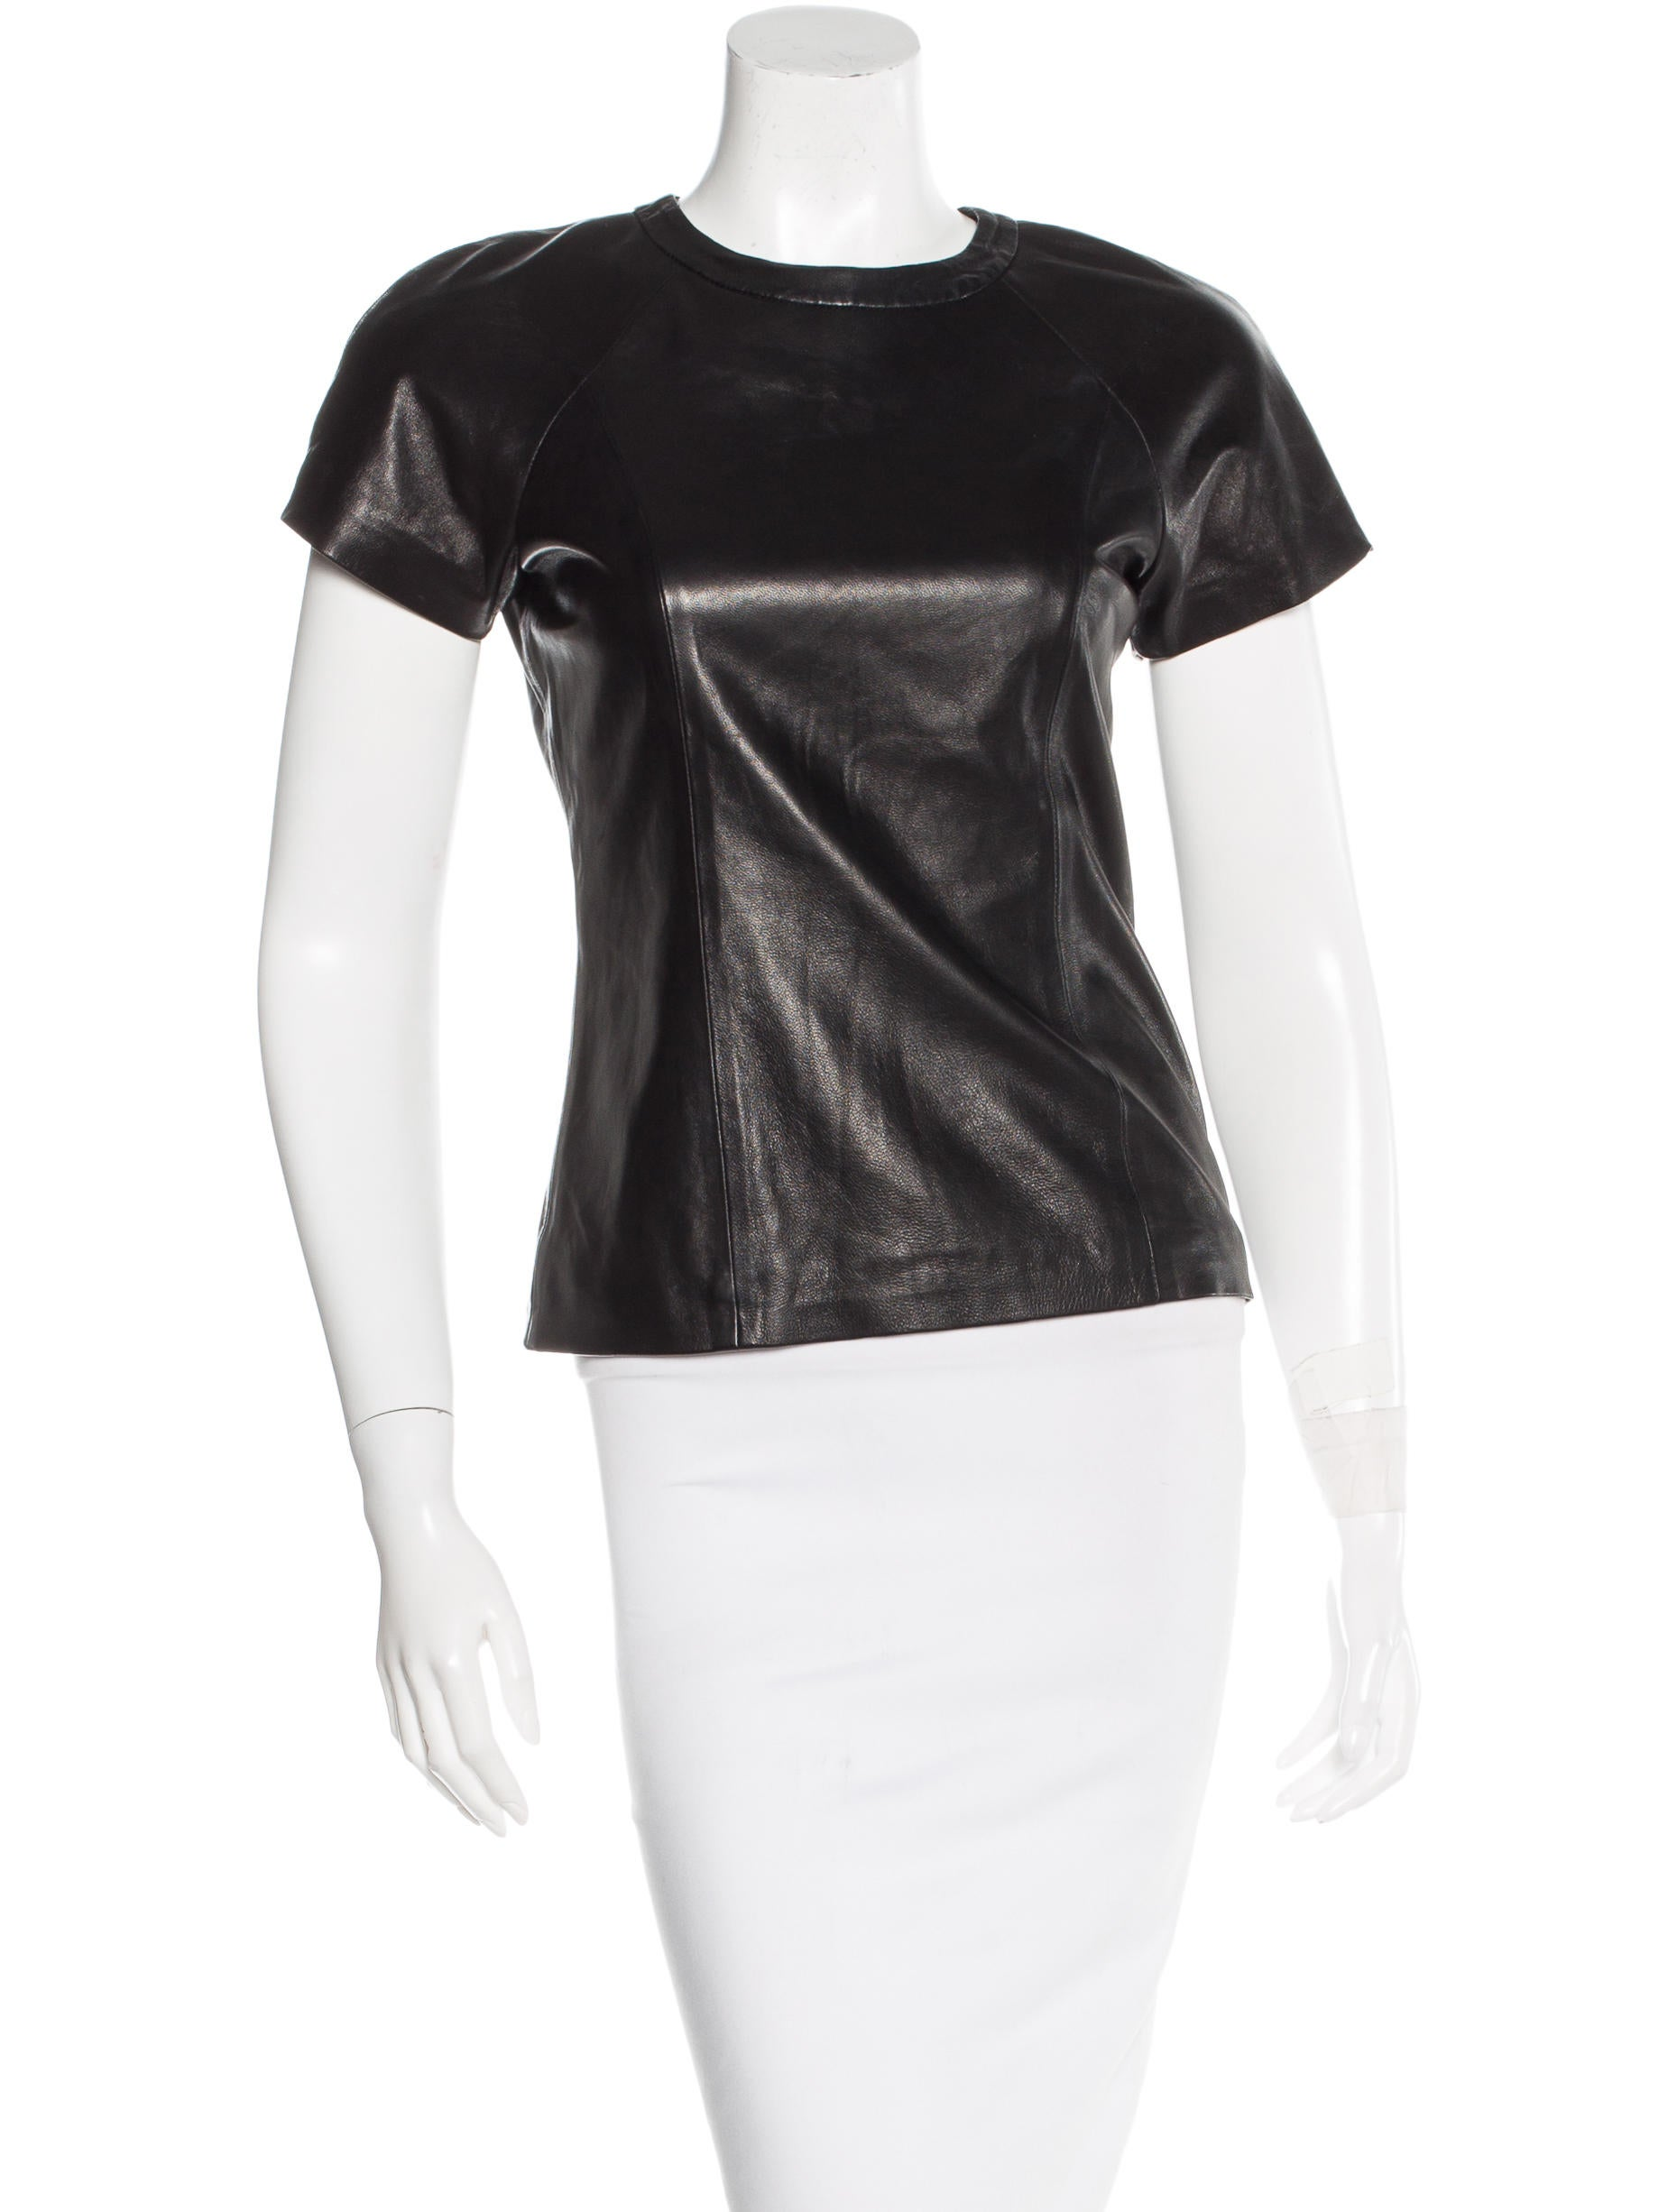 area rug sizes t by wang leather peplum top clothing 29208